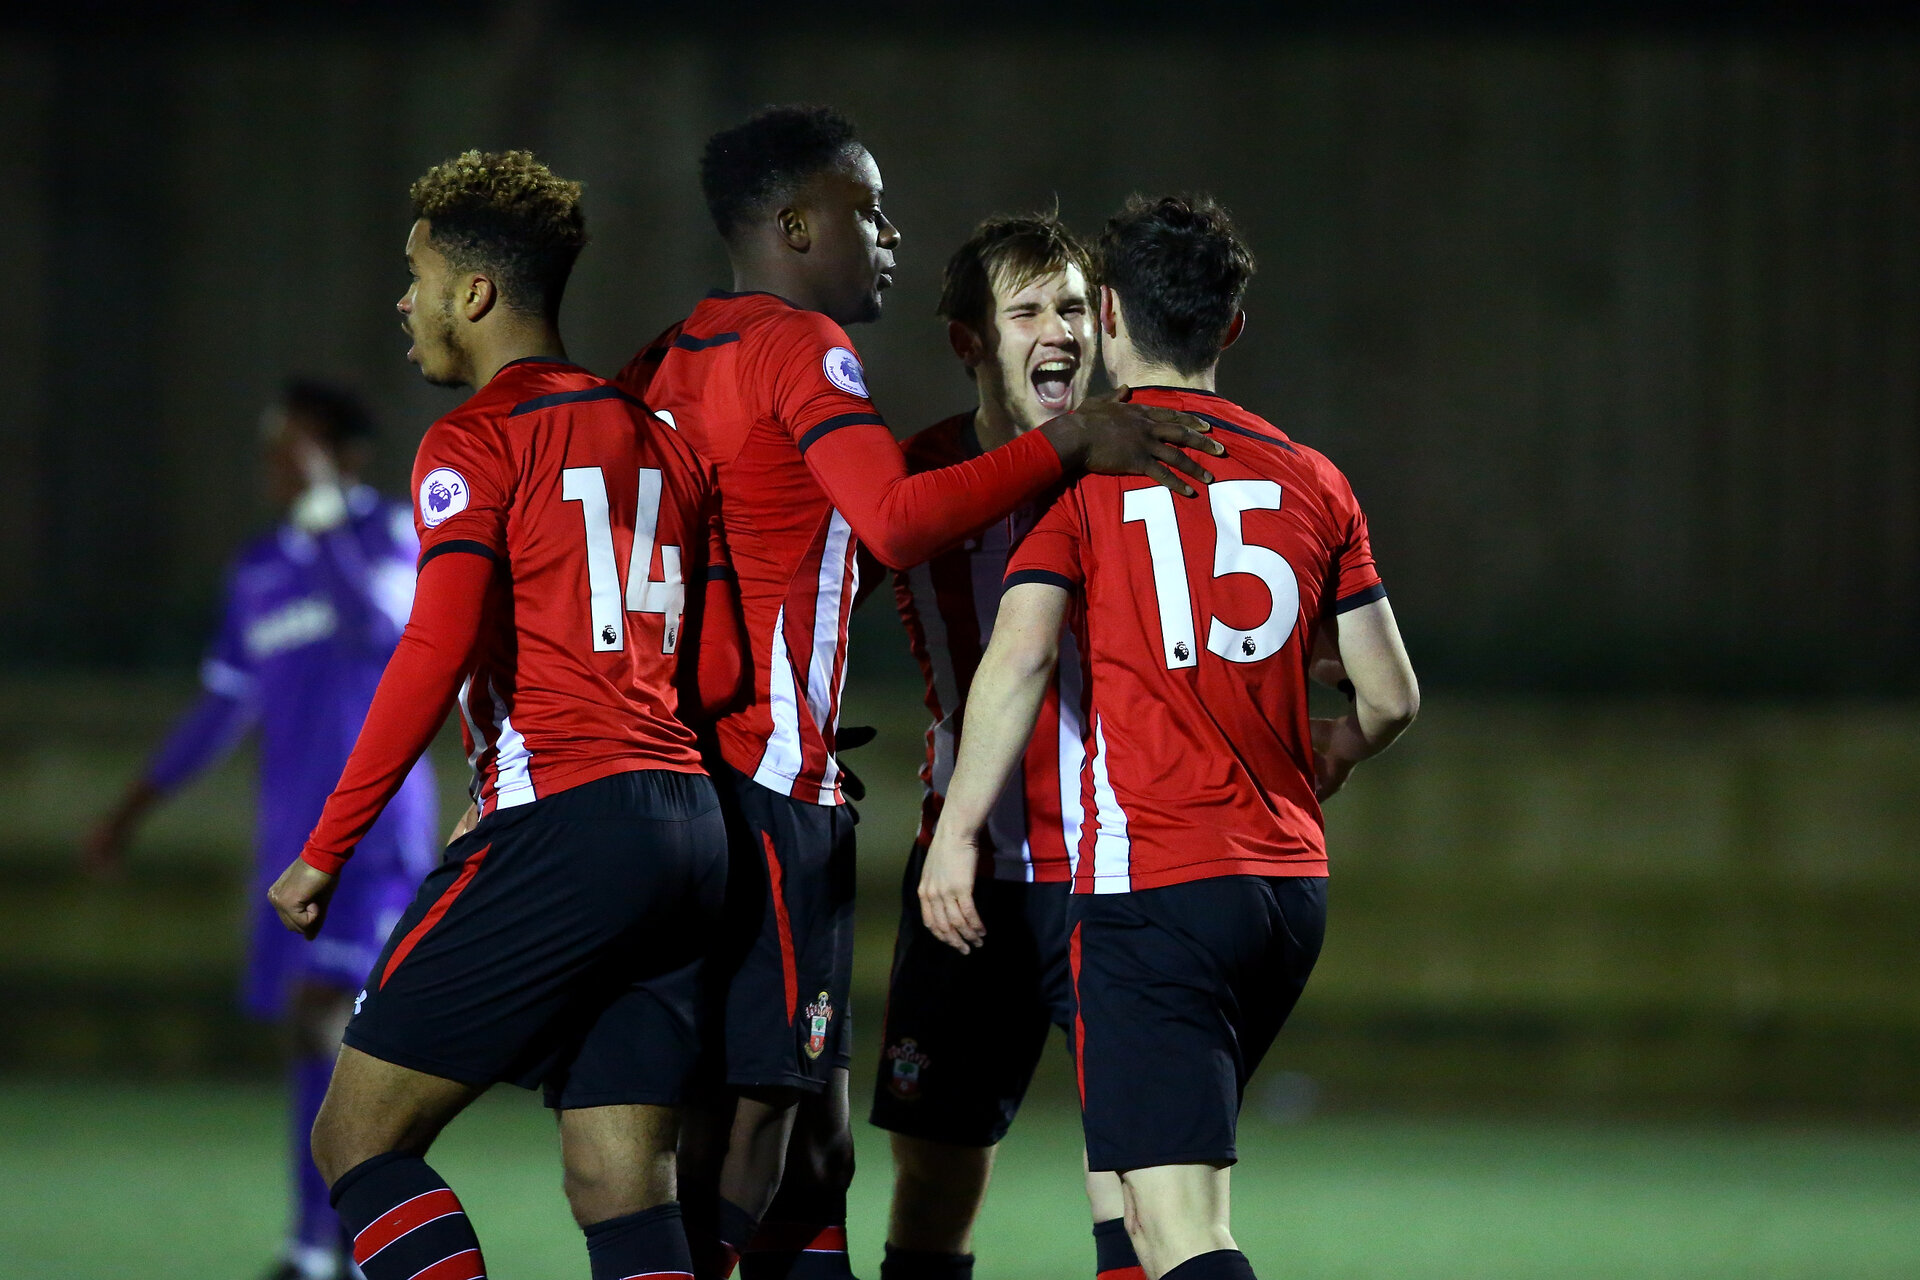 SOUTHAMPTON, ENGLAND - JANUARY 04:  LtoR Enzo Robise, Jonathan Afolabi , Jake Vokins, Will Ferry (goal scorer) during the Pl2 match between Southampton FC   and Stoke City FC pictured at Staplewood Training Ground on January 04, 2018 in Southampton, United Kingdom. (Photo by James Bridle - Southampton FC/Southampton FC via Getty Images)